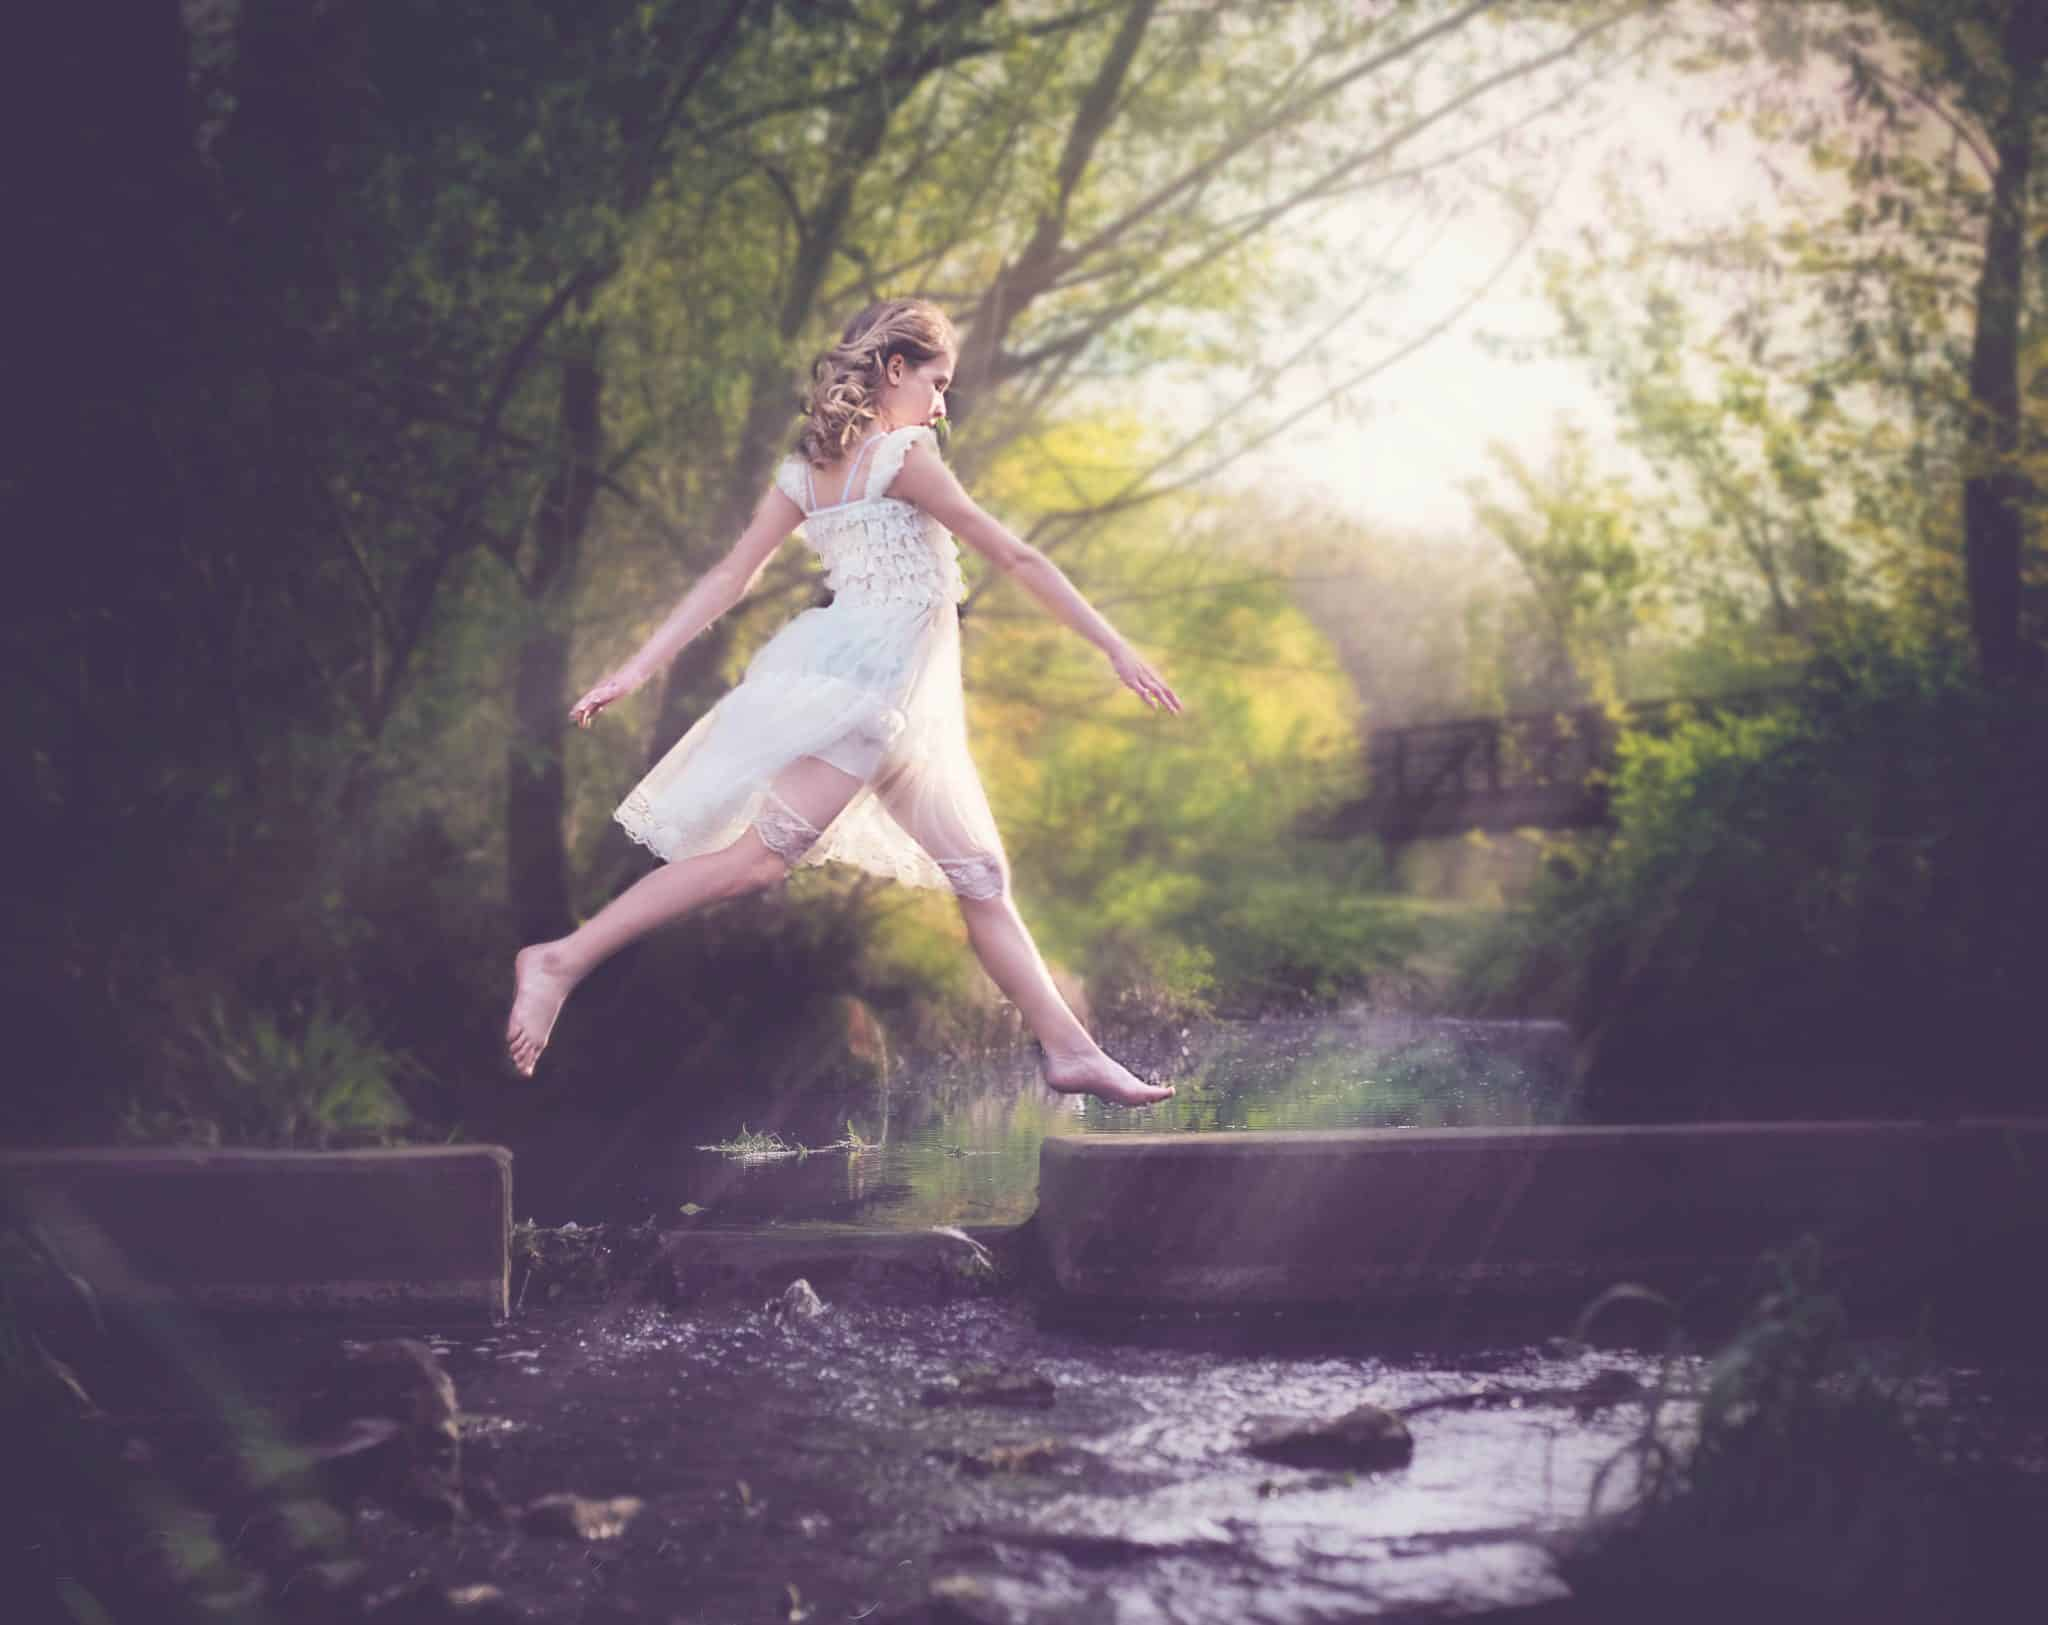 young white girl dressed in white vintage dress jumping over water with sun coming in from the right